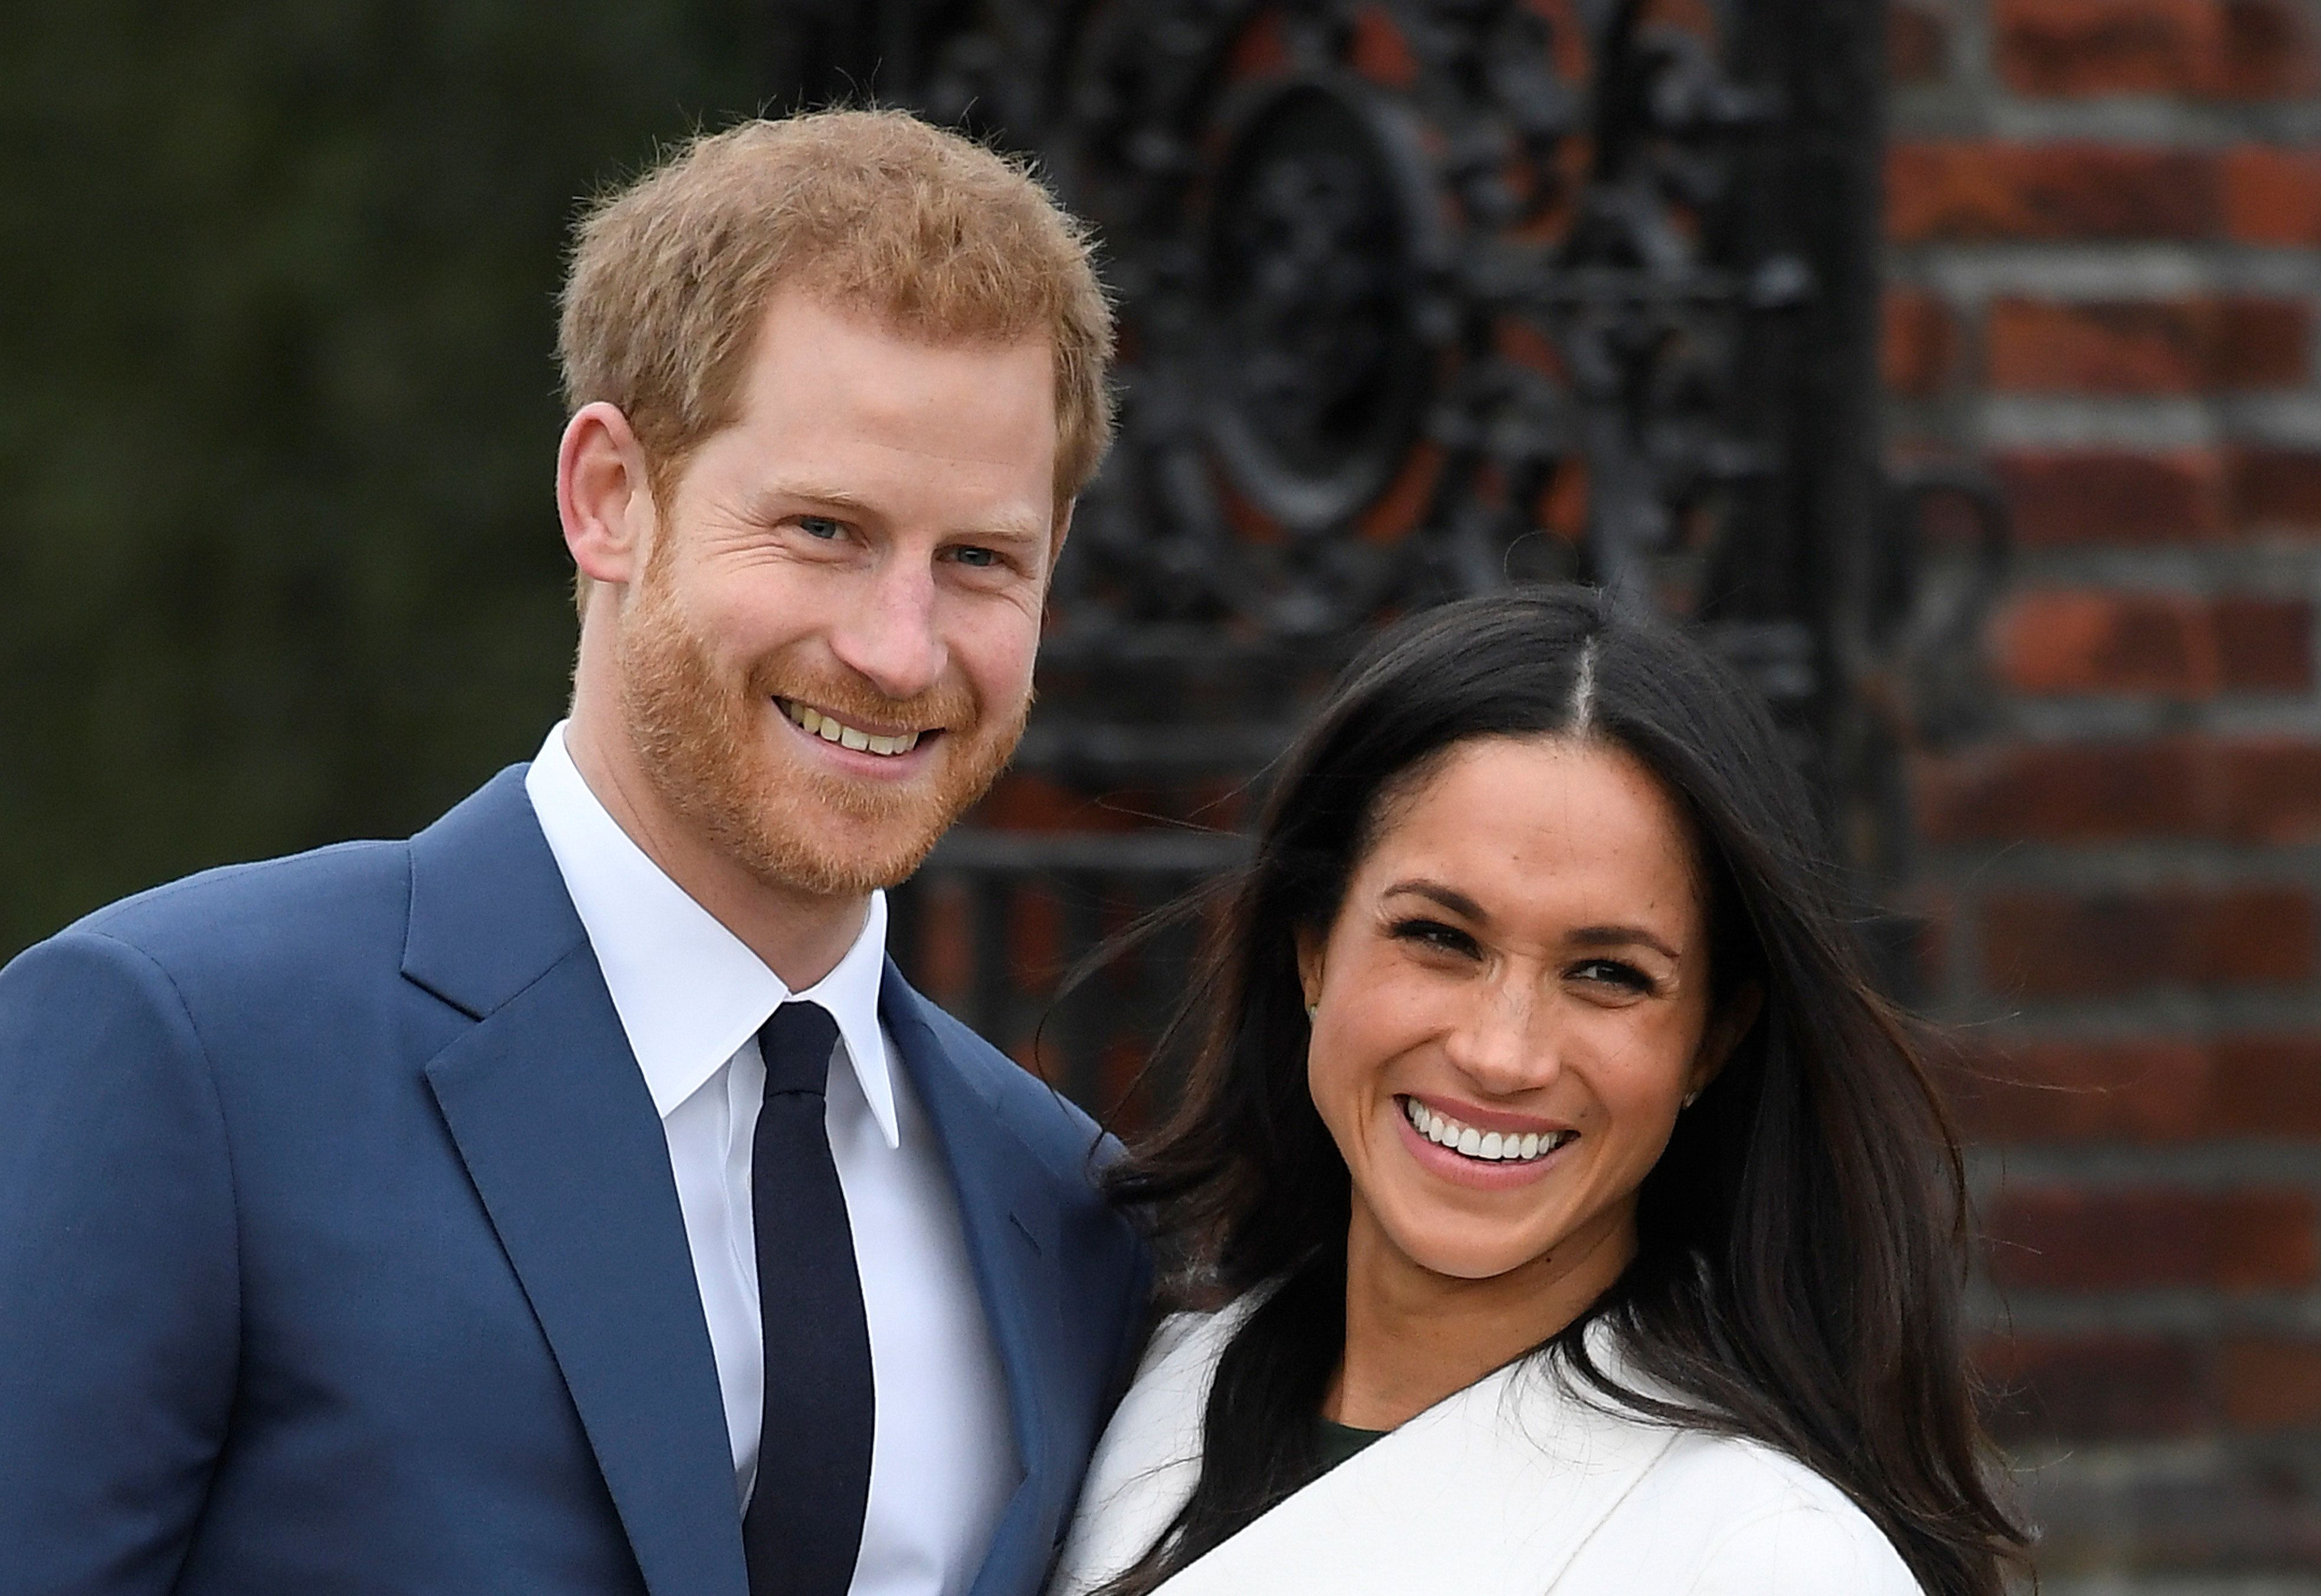 Get Ready! Here's What Time The Royal Wedding